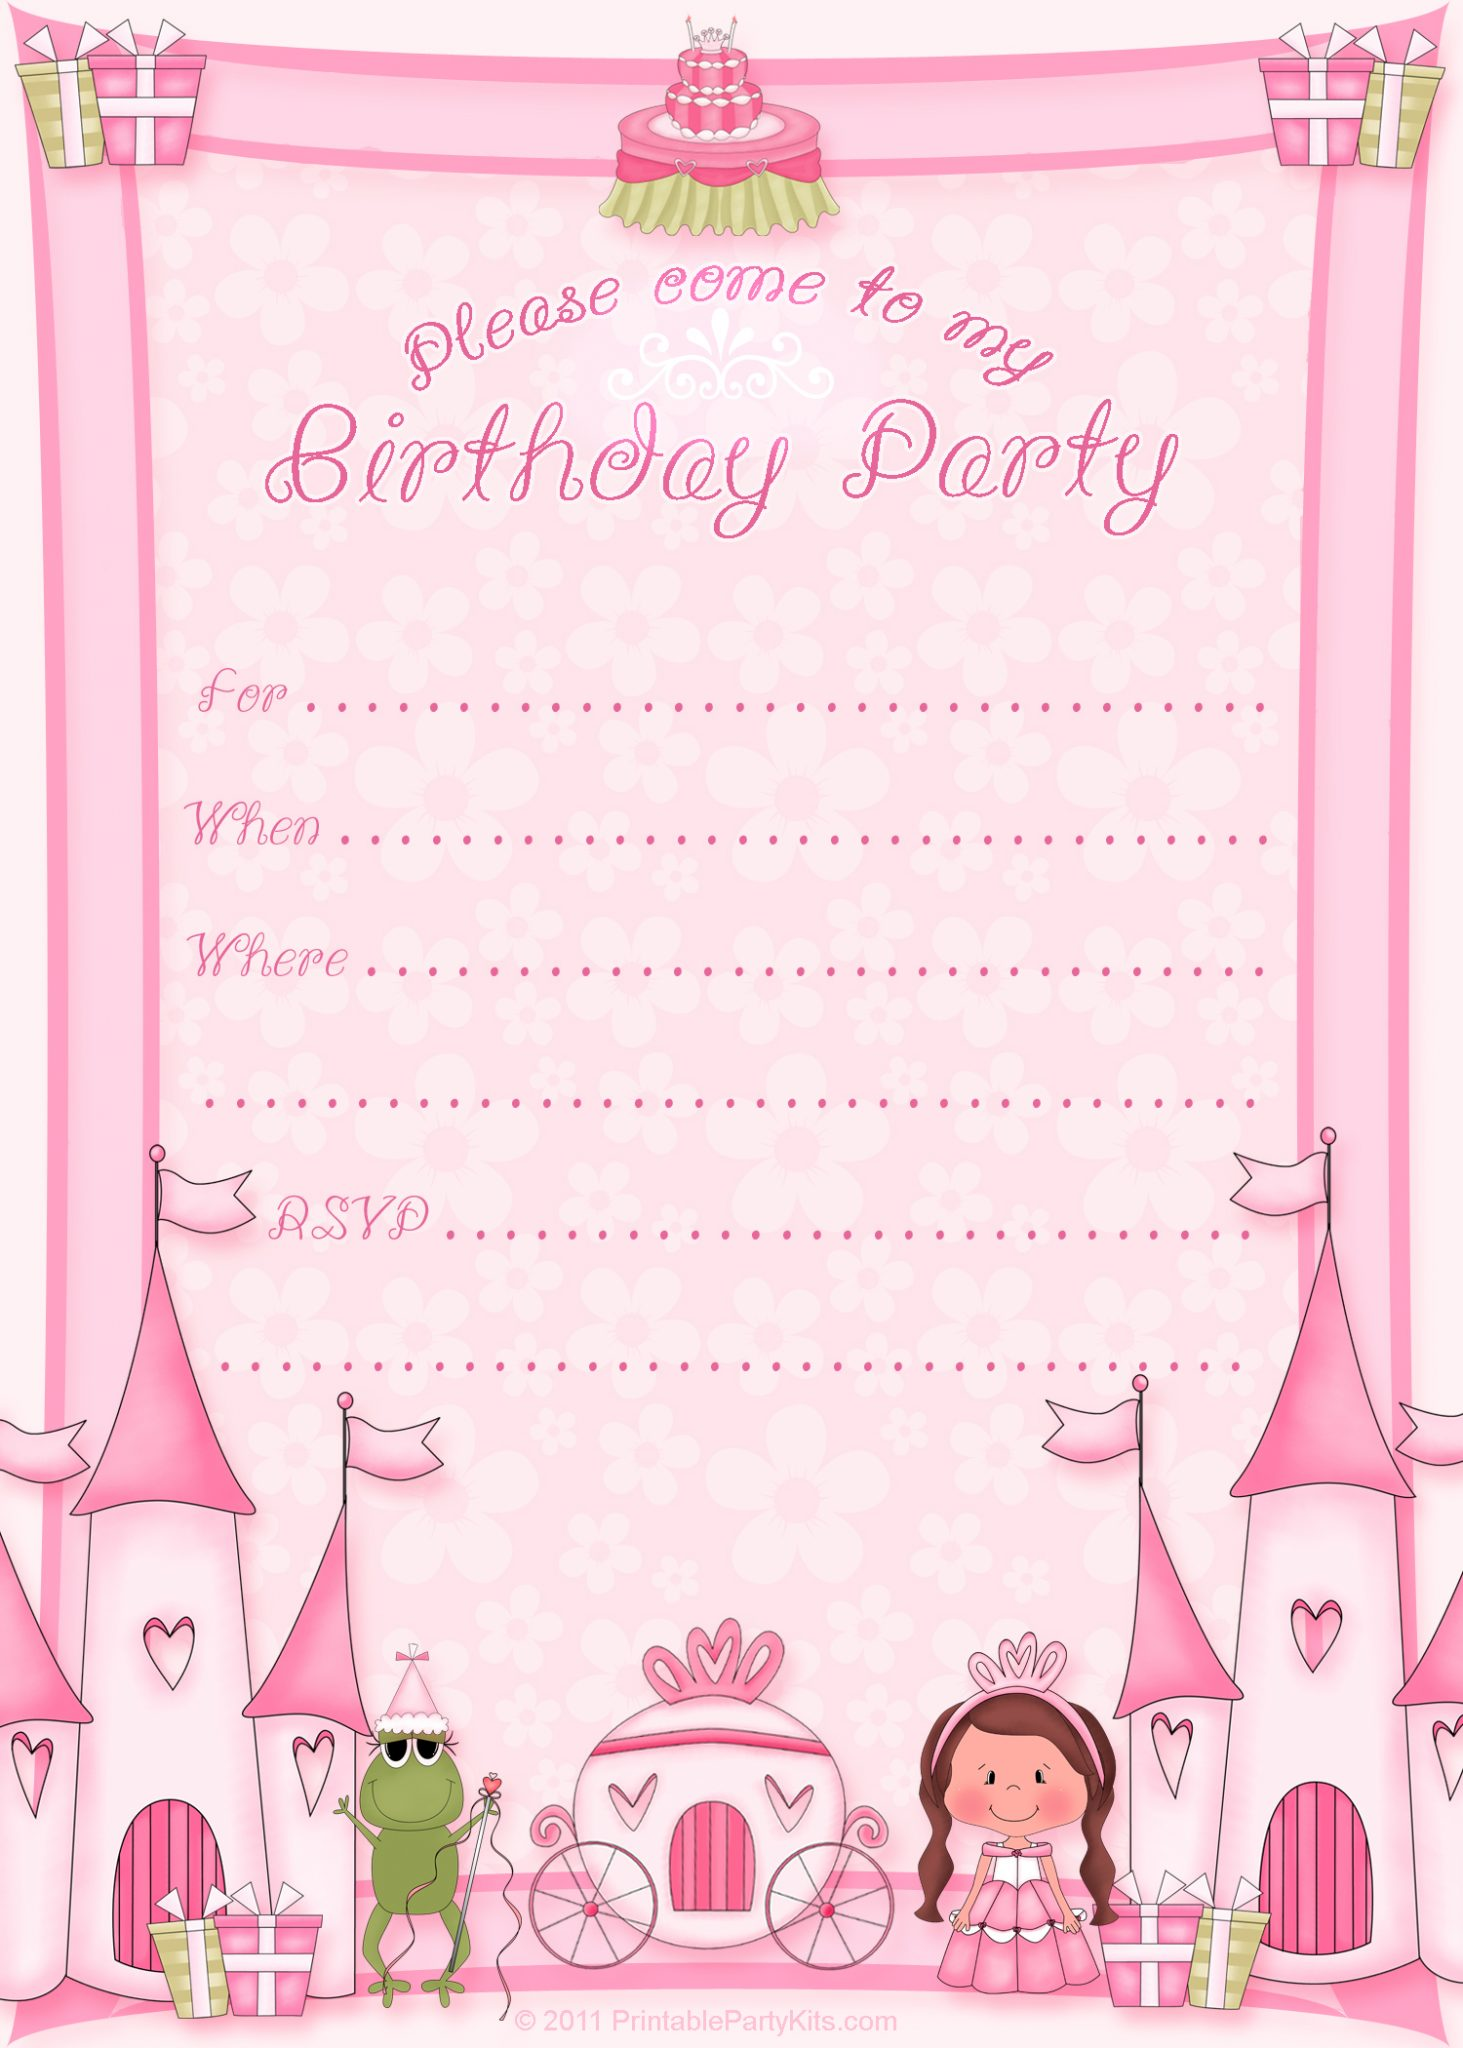 50 Free Birthday Invitation Templates You Will Love These – Free Birthday Party Invitations for Kids